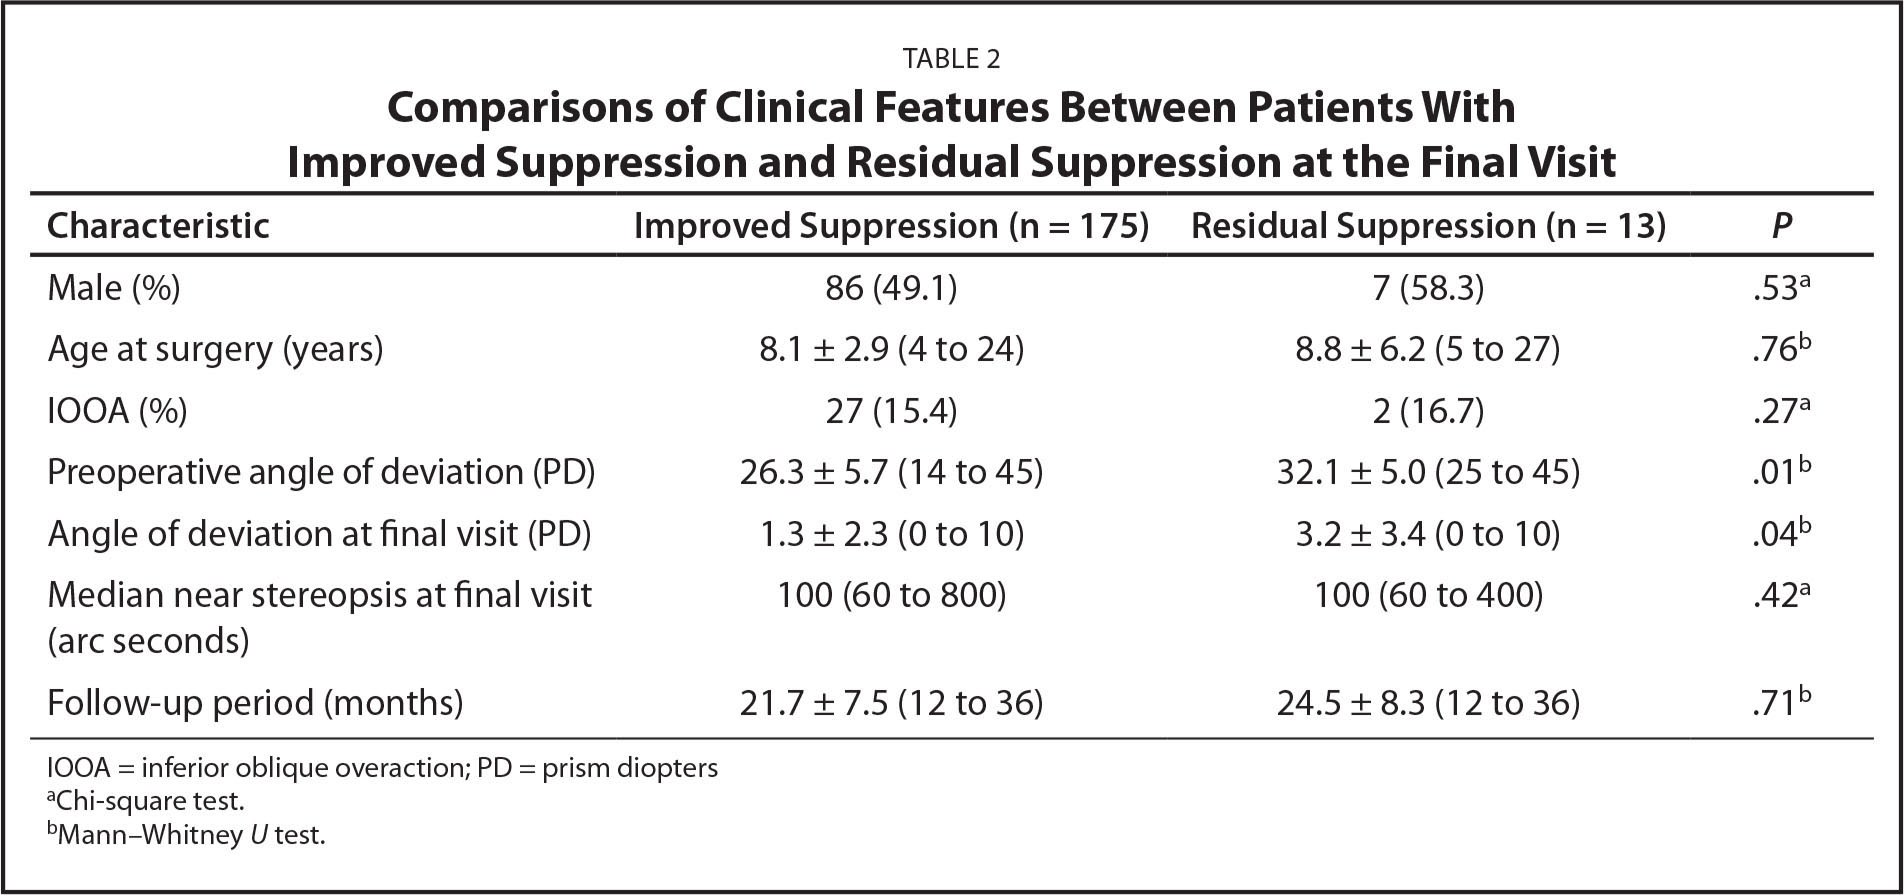 Comparisons of Clinical Features Between Patients With Improved Suppression and Residual Suppression at the Final Visit